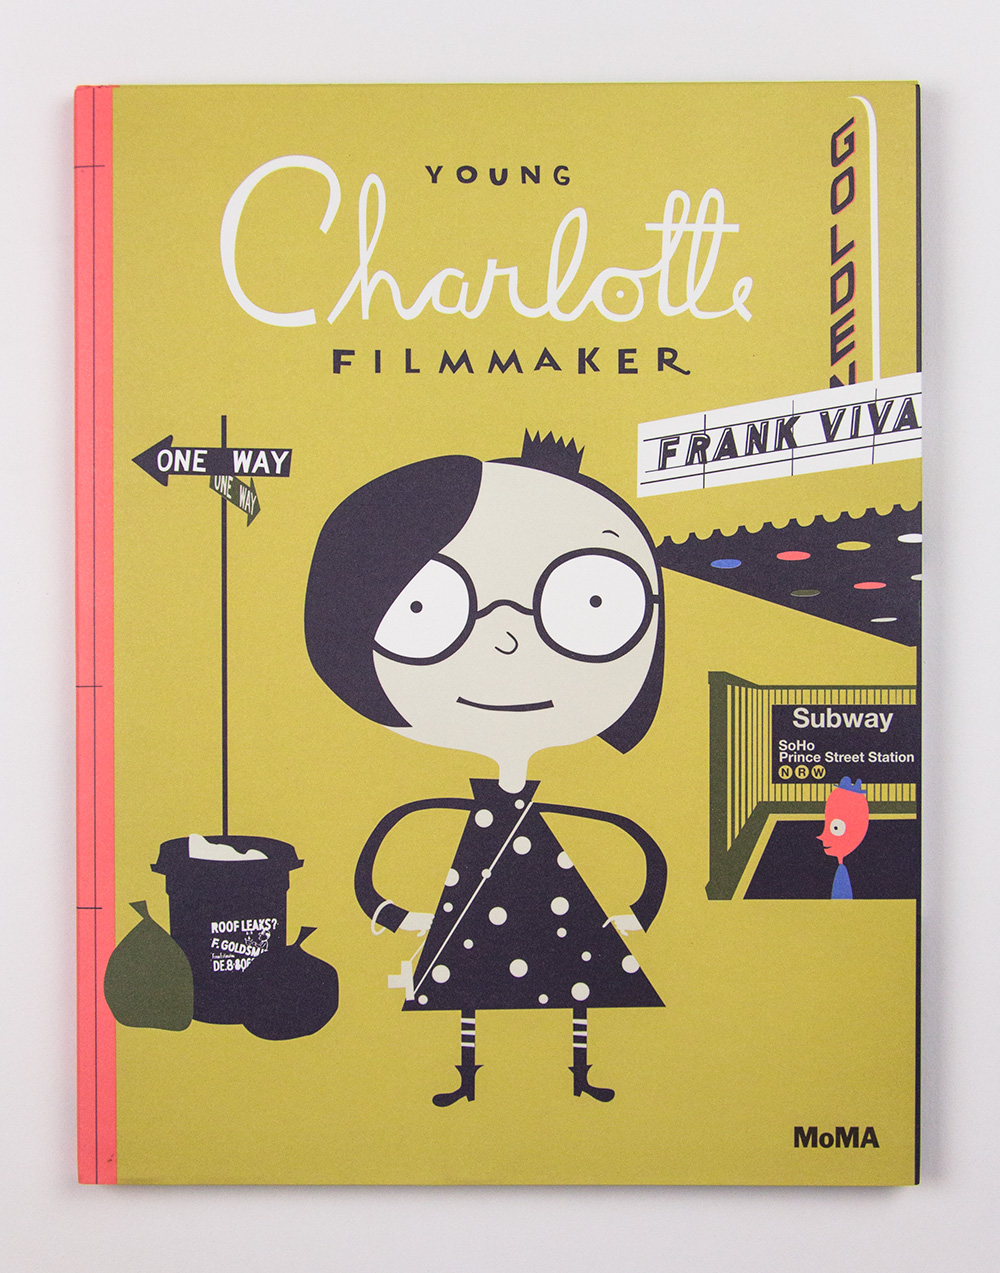 Young Charlotte, Filmmaker by Frank Viiva